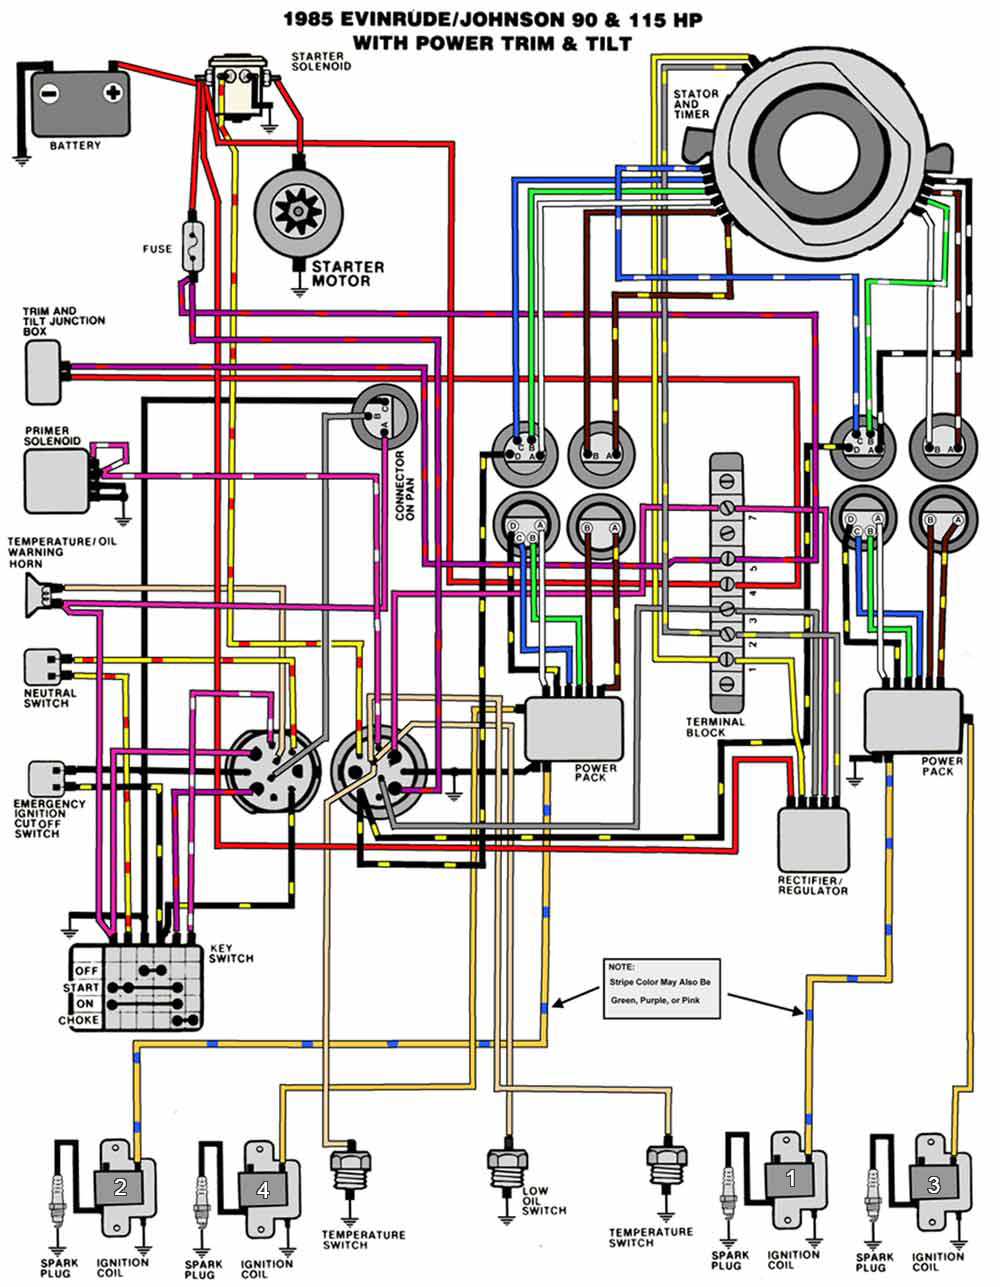 1985_90_115TnT mastertech marine evinrude johnson outboard wiring diagrams 1987 90 hp mercury outboard wiring diagram at fashall.co